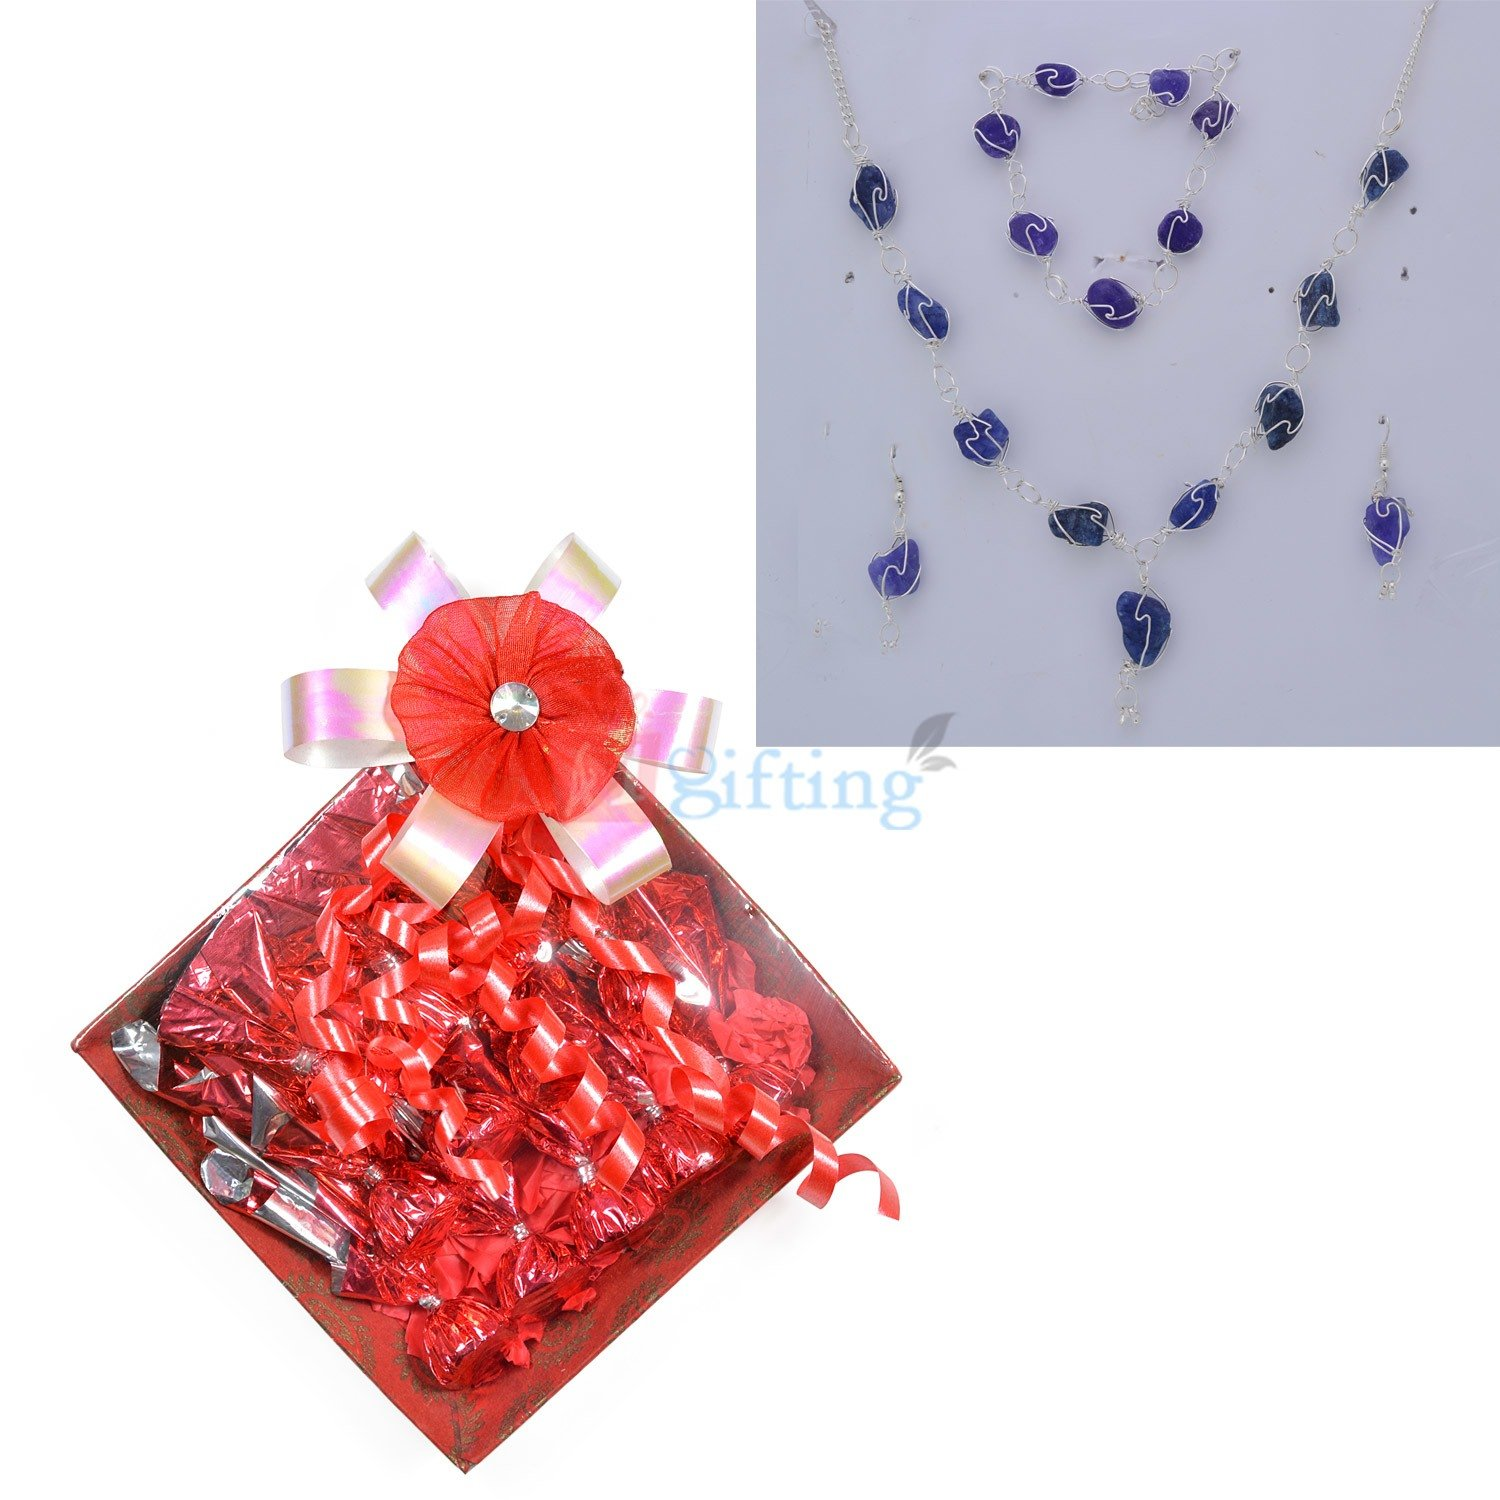 Stone Jewellery with Chocolate Pack Gift